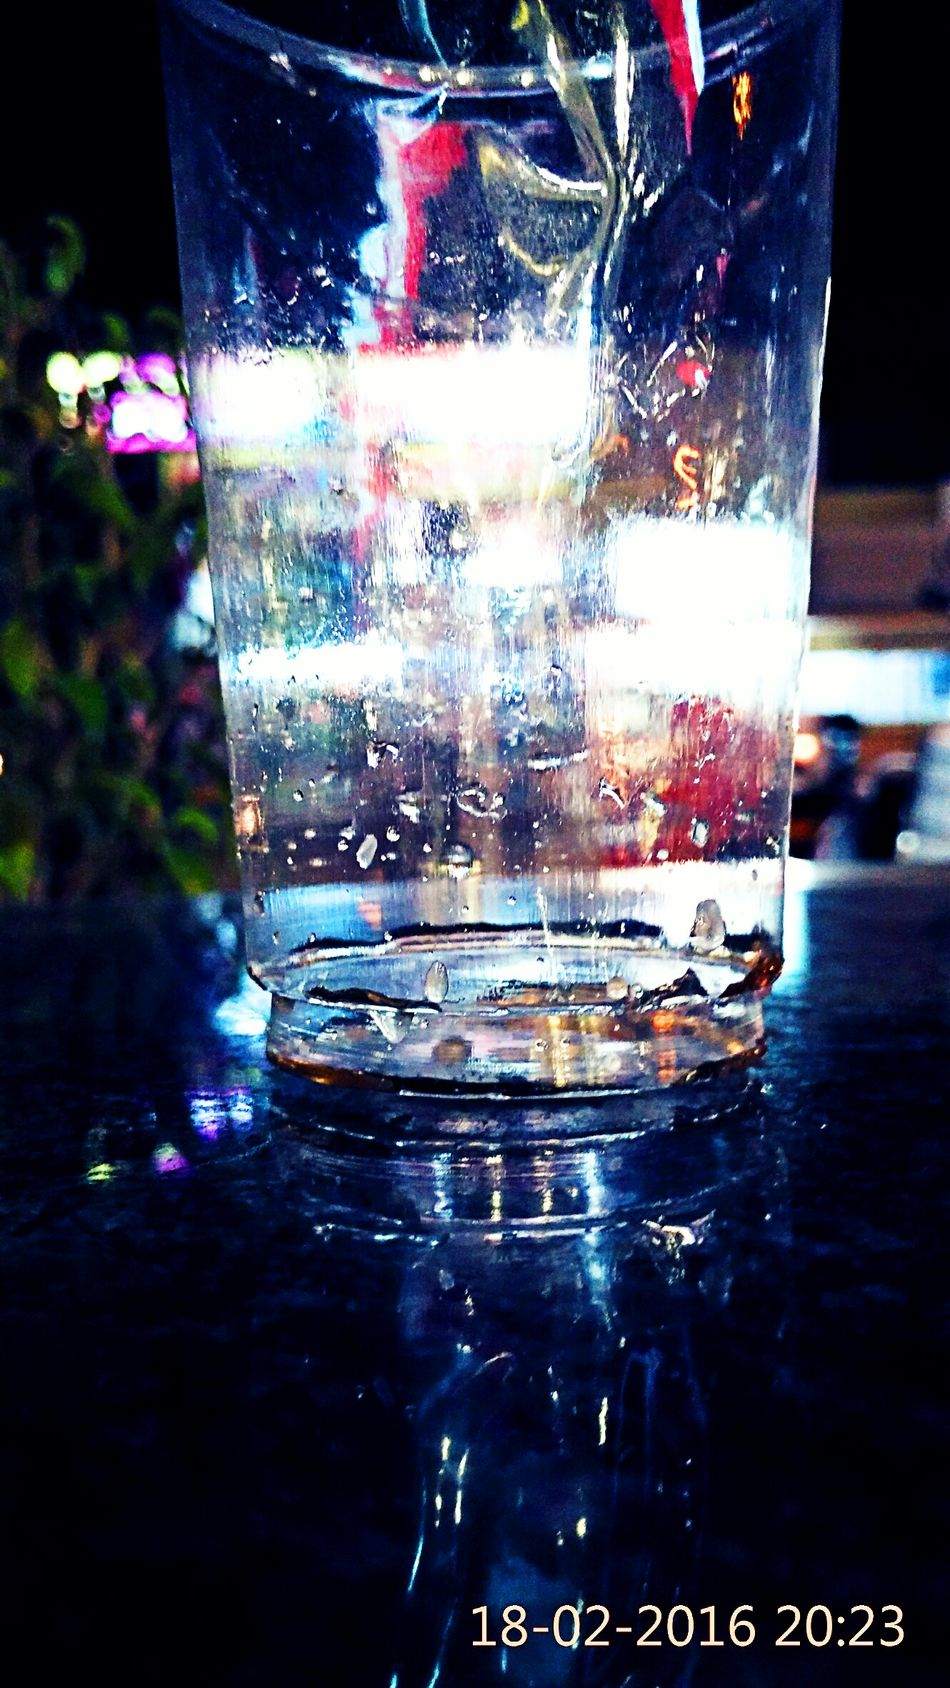 Glass Art Water Reflections Watet Droplets The Mix Up